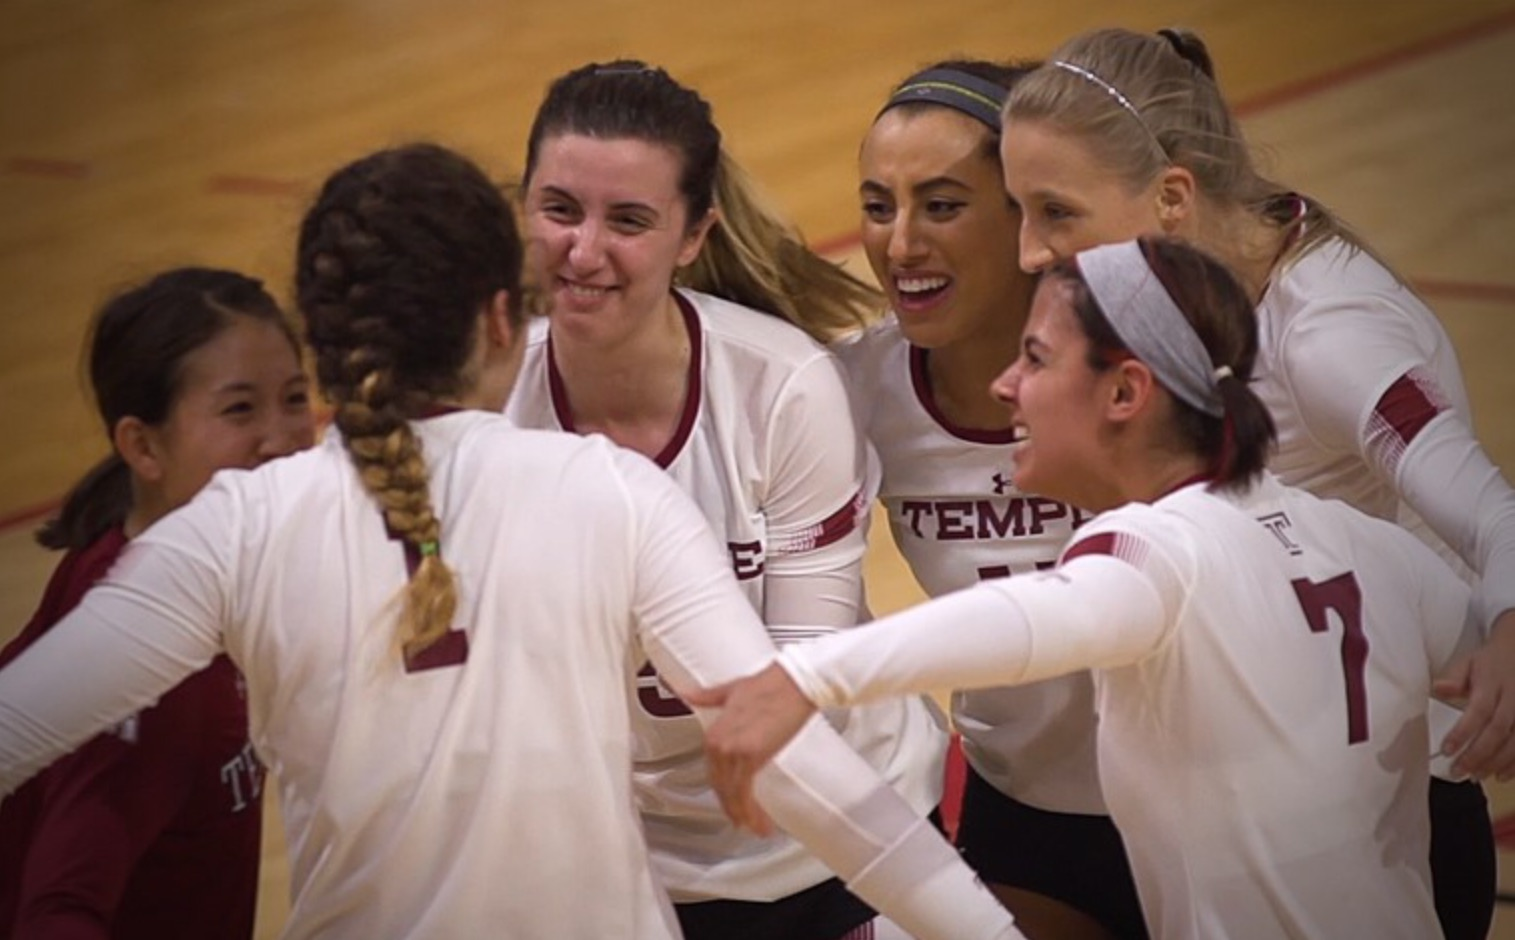 Asci reaches 1,000 kills as Temple Beats UConn